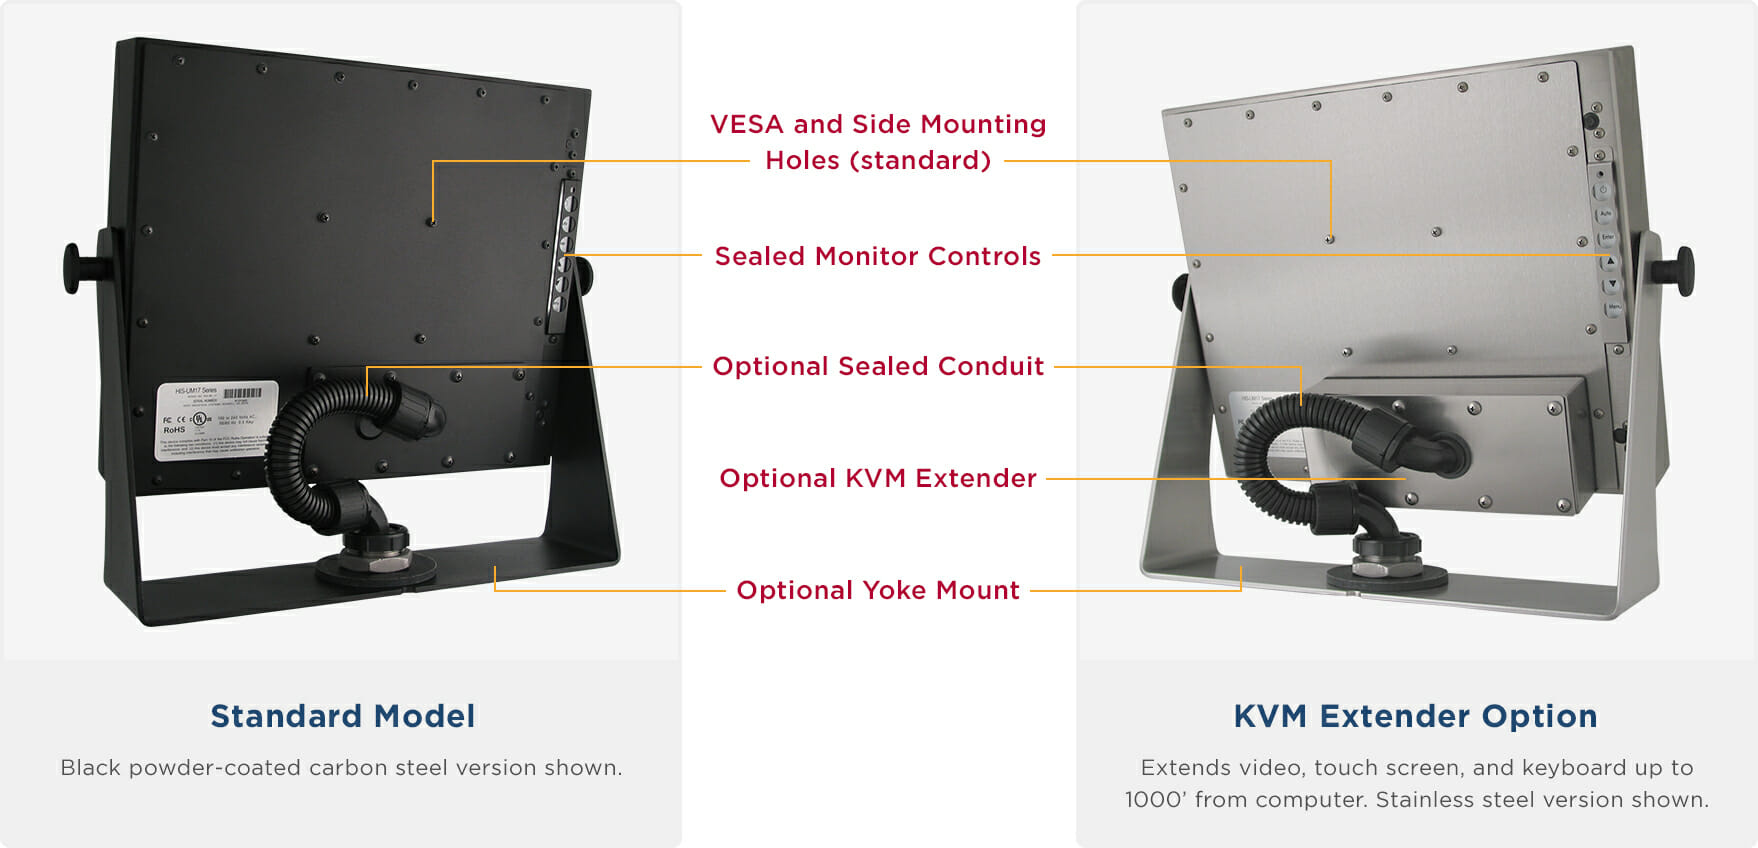 """Rear views of NEMA 4/4X Rated 17"""" Universal Mount Monitors showing Industrial Enclosure features and options"""